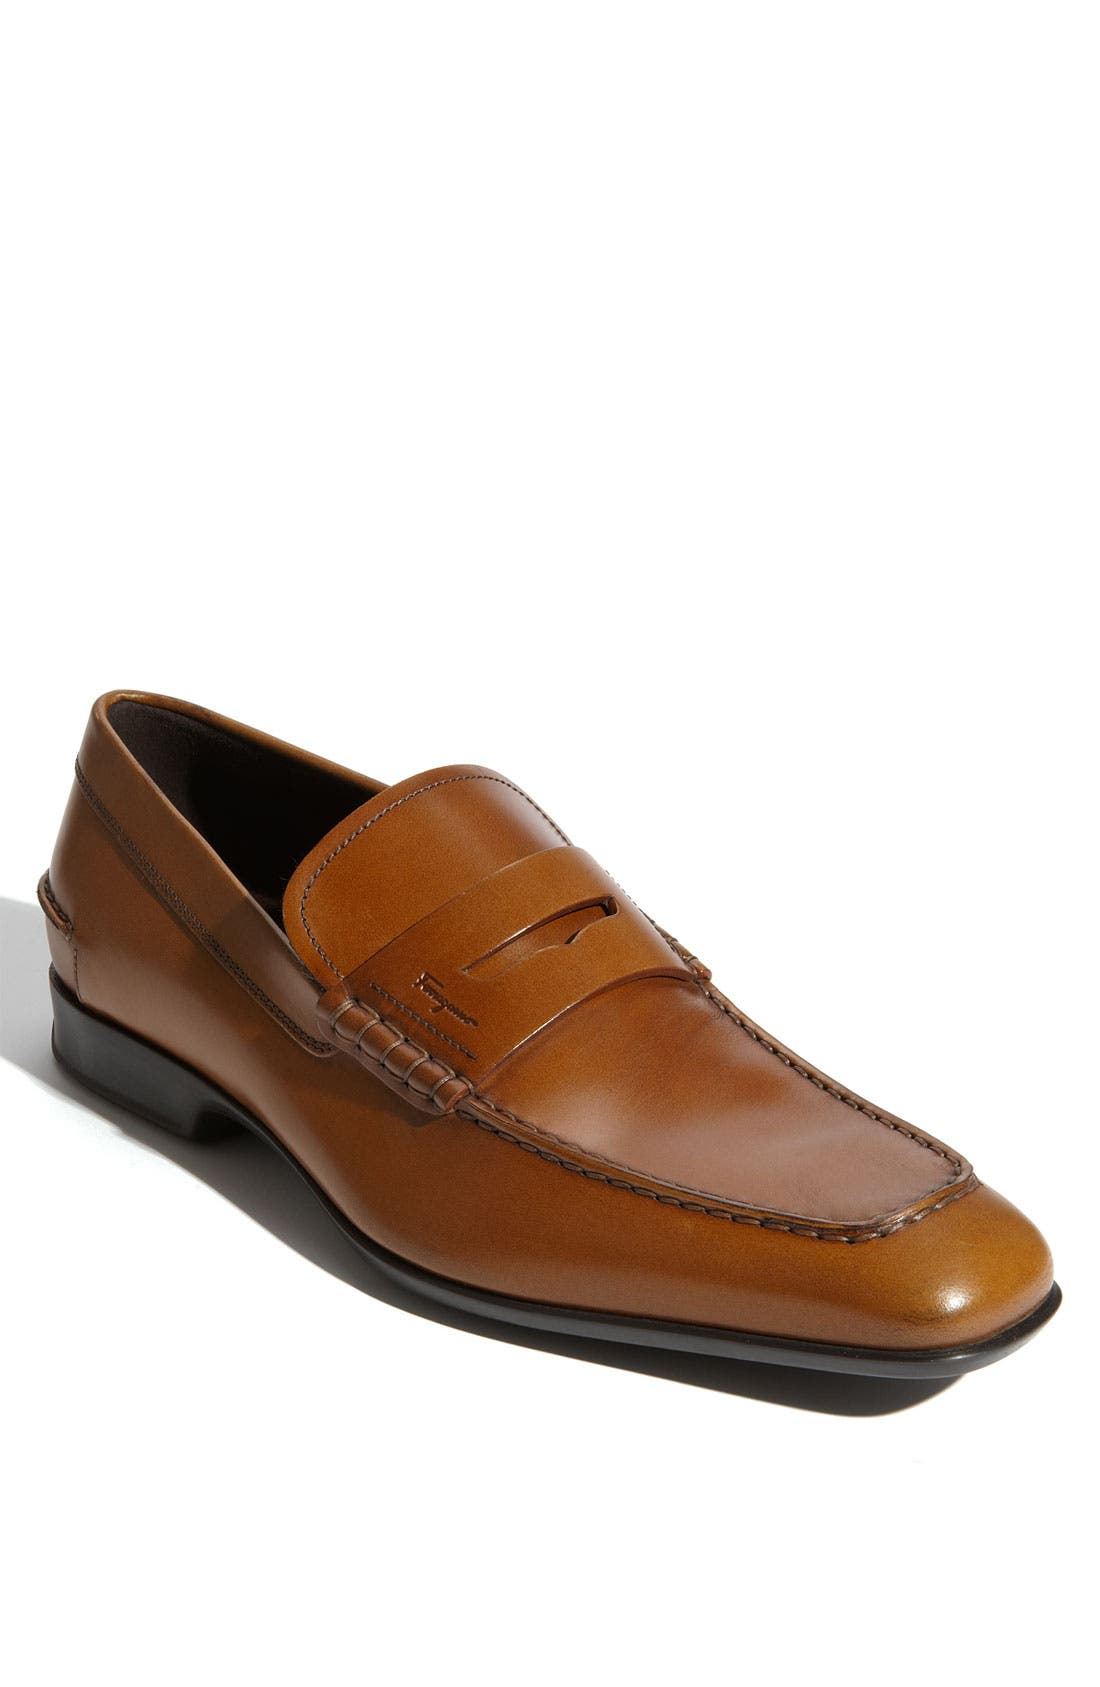 Alternate Image 1 Selected - Salvatore Ferragamo 'Canto' Penny Loafer